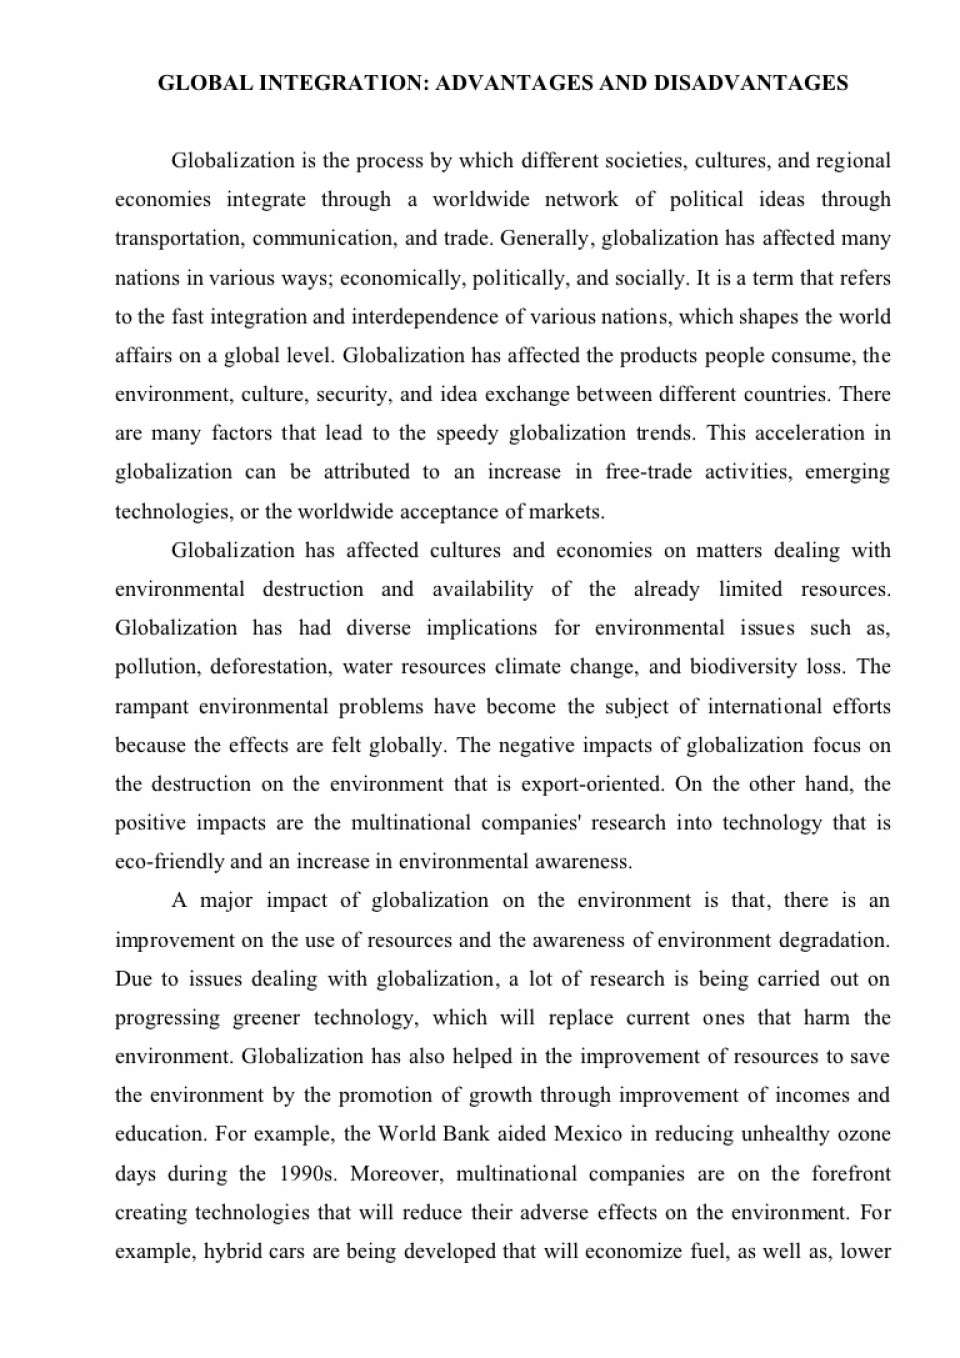 021 Essayglobalization Phpapp02 Thumbnail Essay Example Advantage And Disadvantage Of Shocking Science Advantages Disadvantages With Quotes In Kannada Tamil Pdf 960